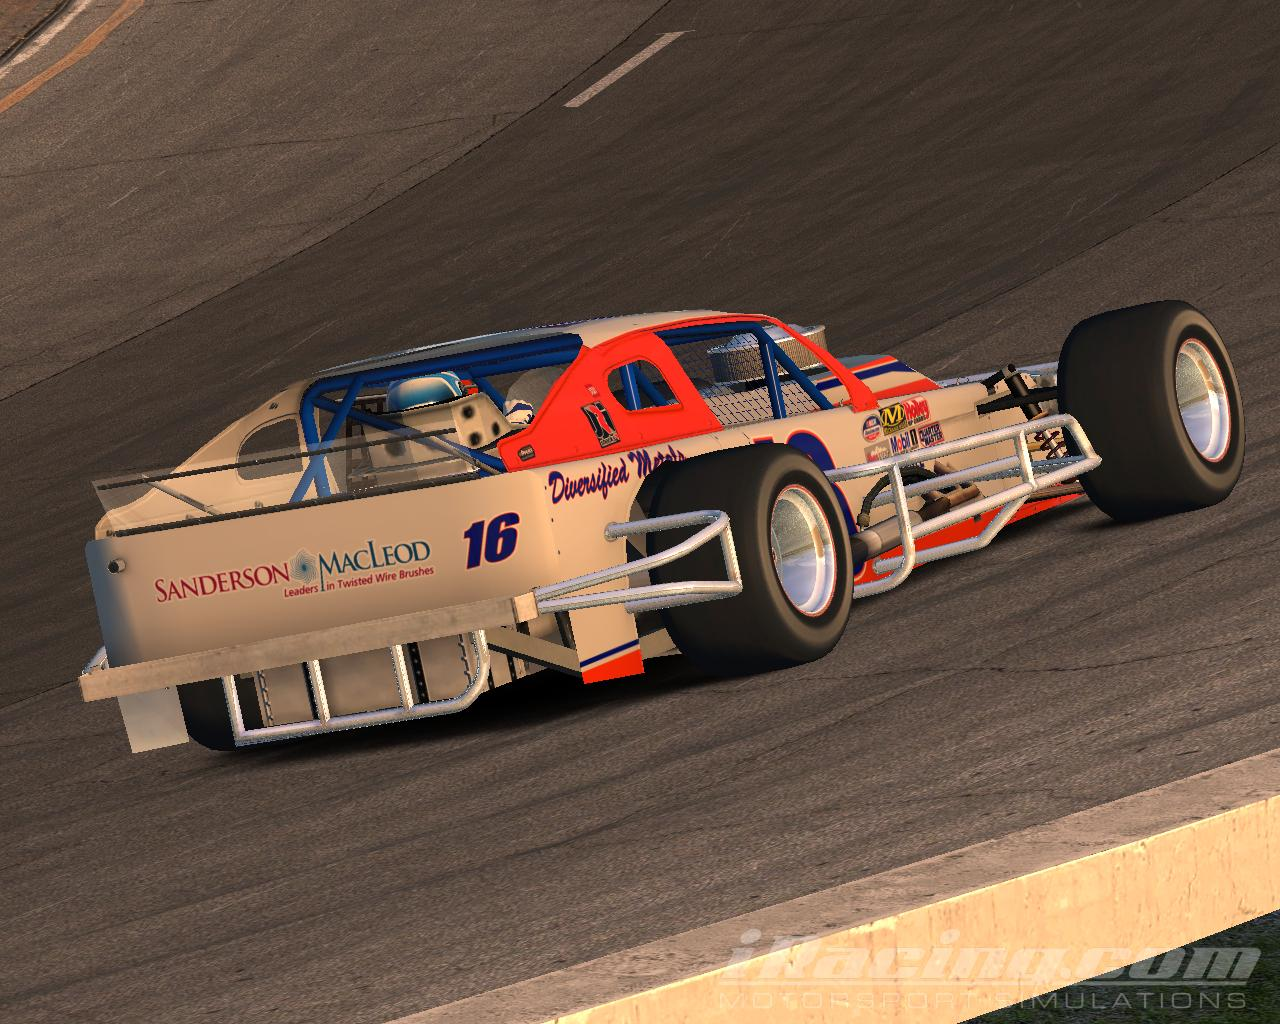 This paint scheme is unlisted. Only those with the link can see it.